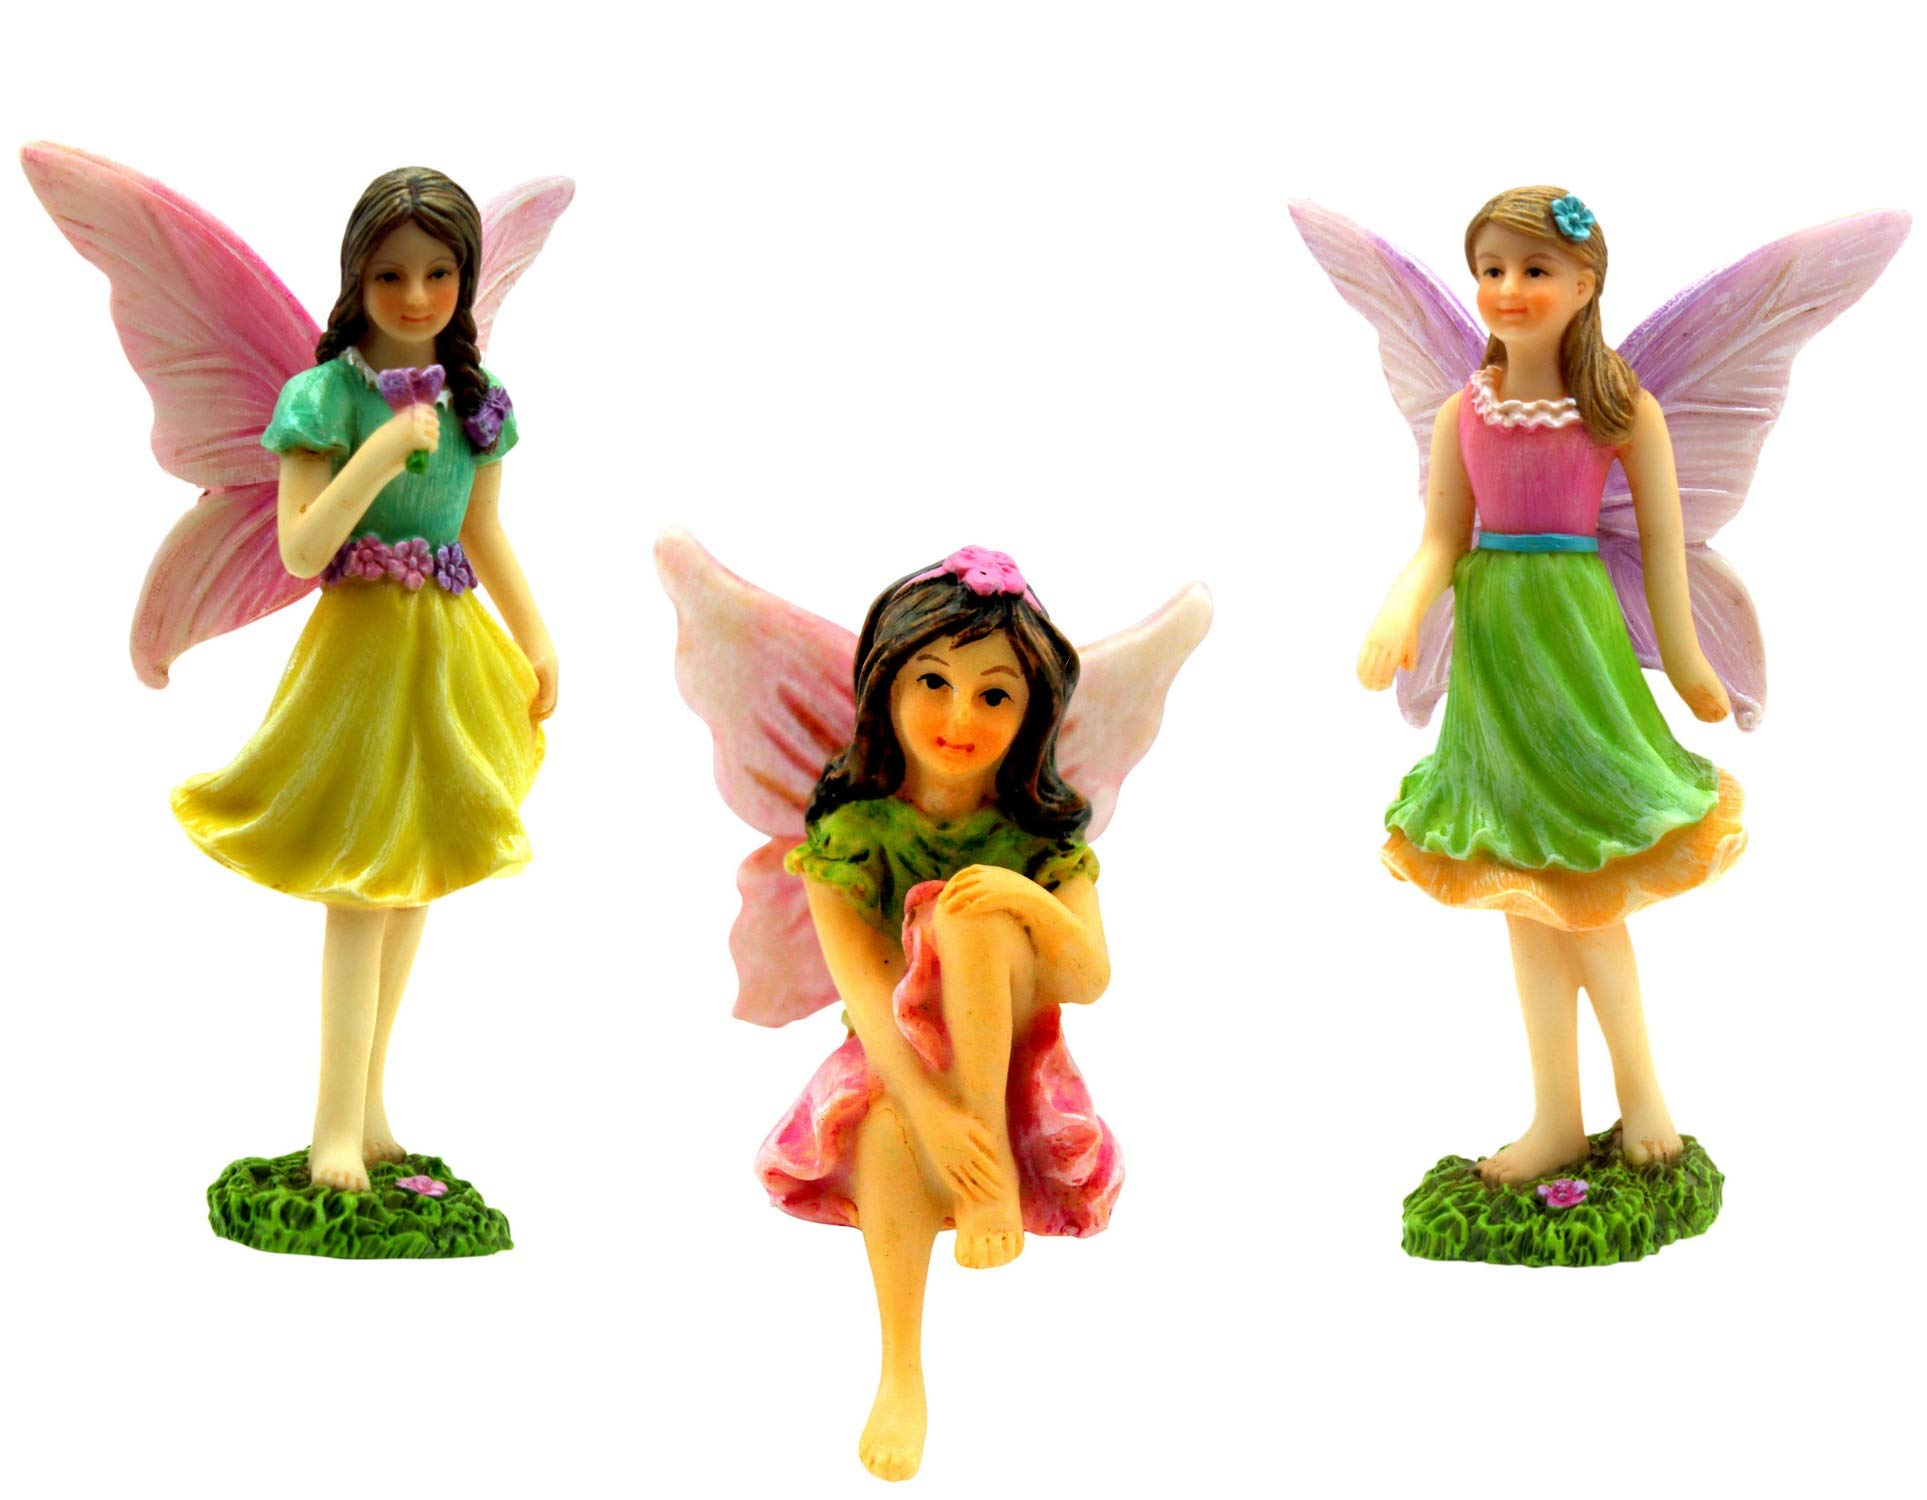 Pretmanns Fairy Garden Accessories Miniature Fairy Figurines Ornaments For Fairy Garden 3 Pieces Buy Online In El Salvador At Elsalvador Desertcart Com Productid 49888361